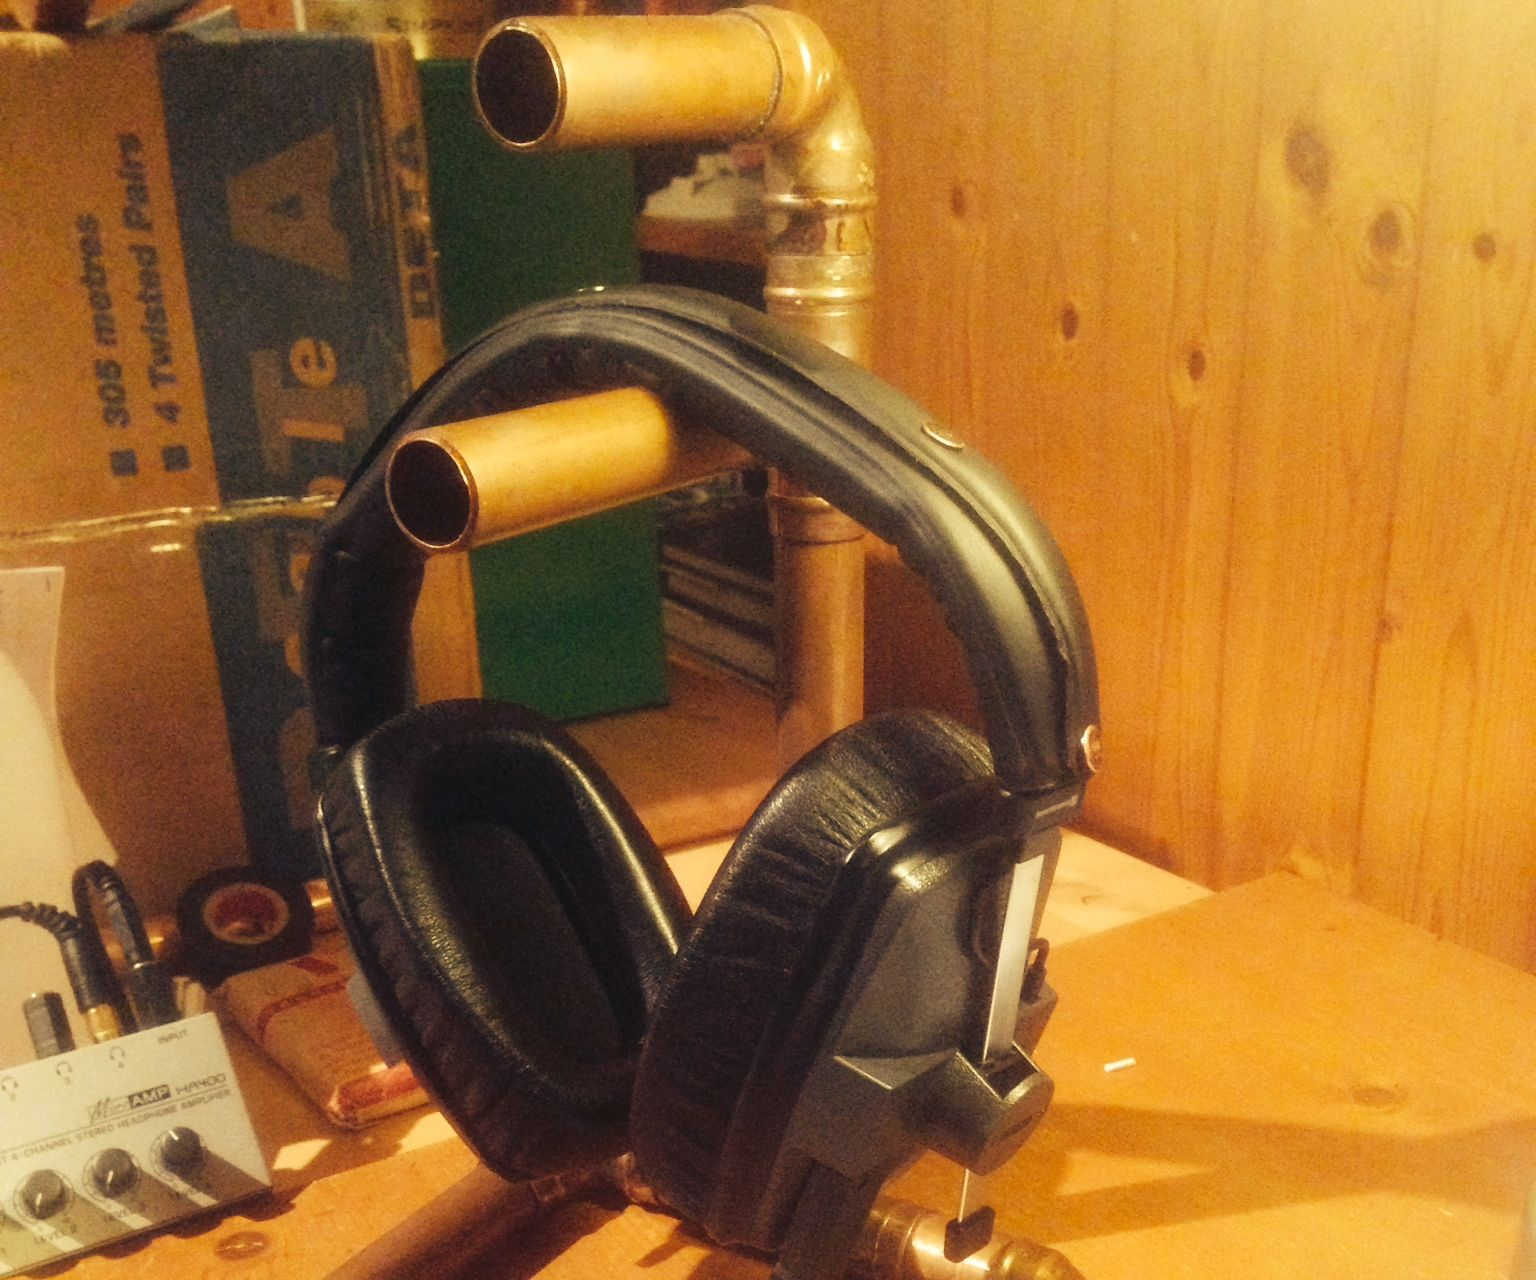 Copper Pipe Headphone Stand